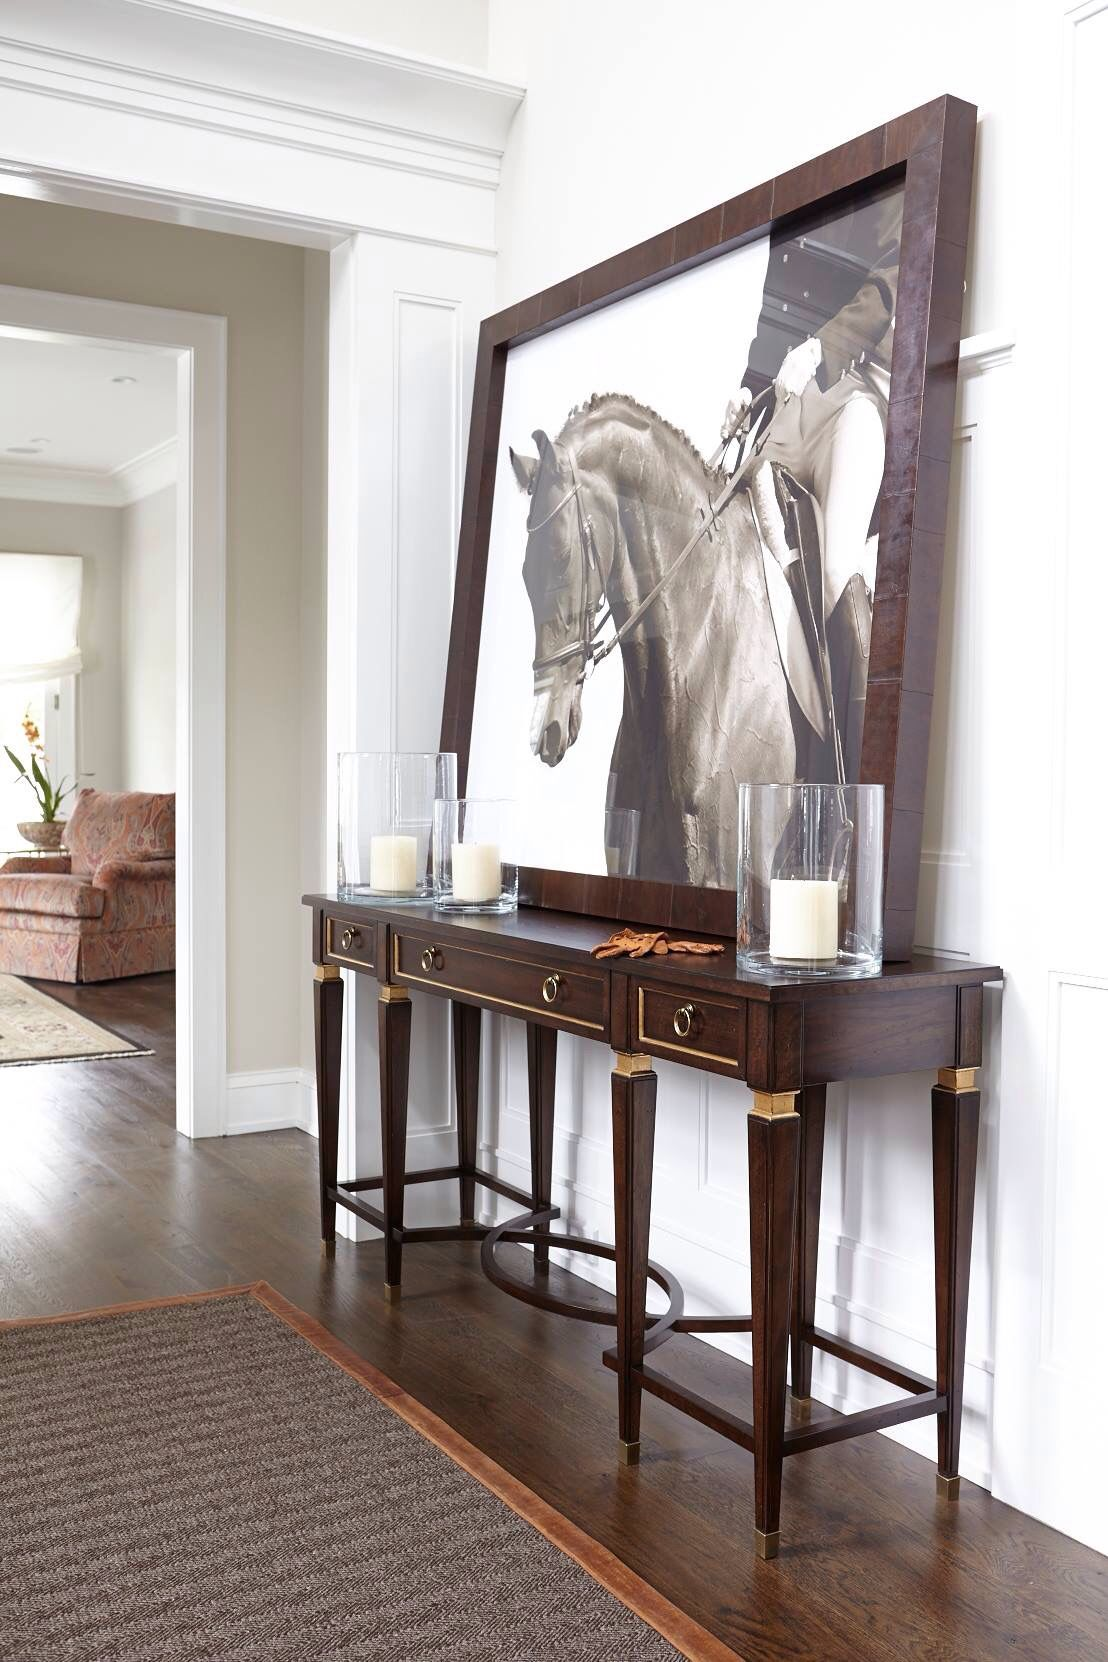 The Equestrian Life Has A Style All Of Its Own One That I Have Come To Love Check Out These Drool Worthy E Equestrian Decor Transitional Decor Horse Decor